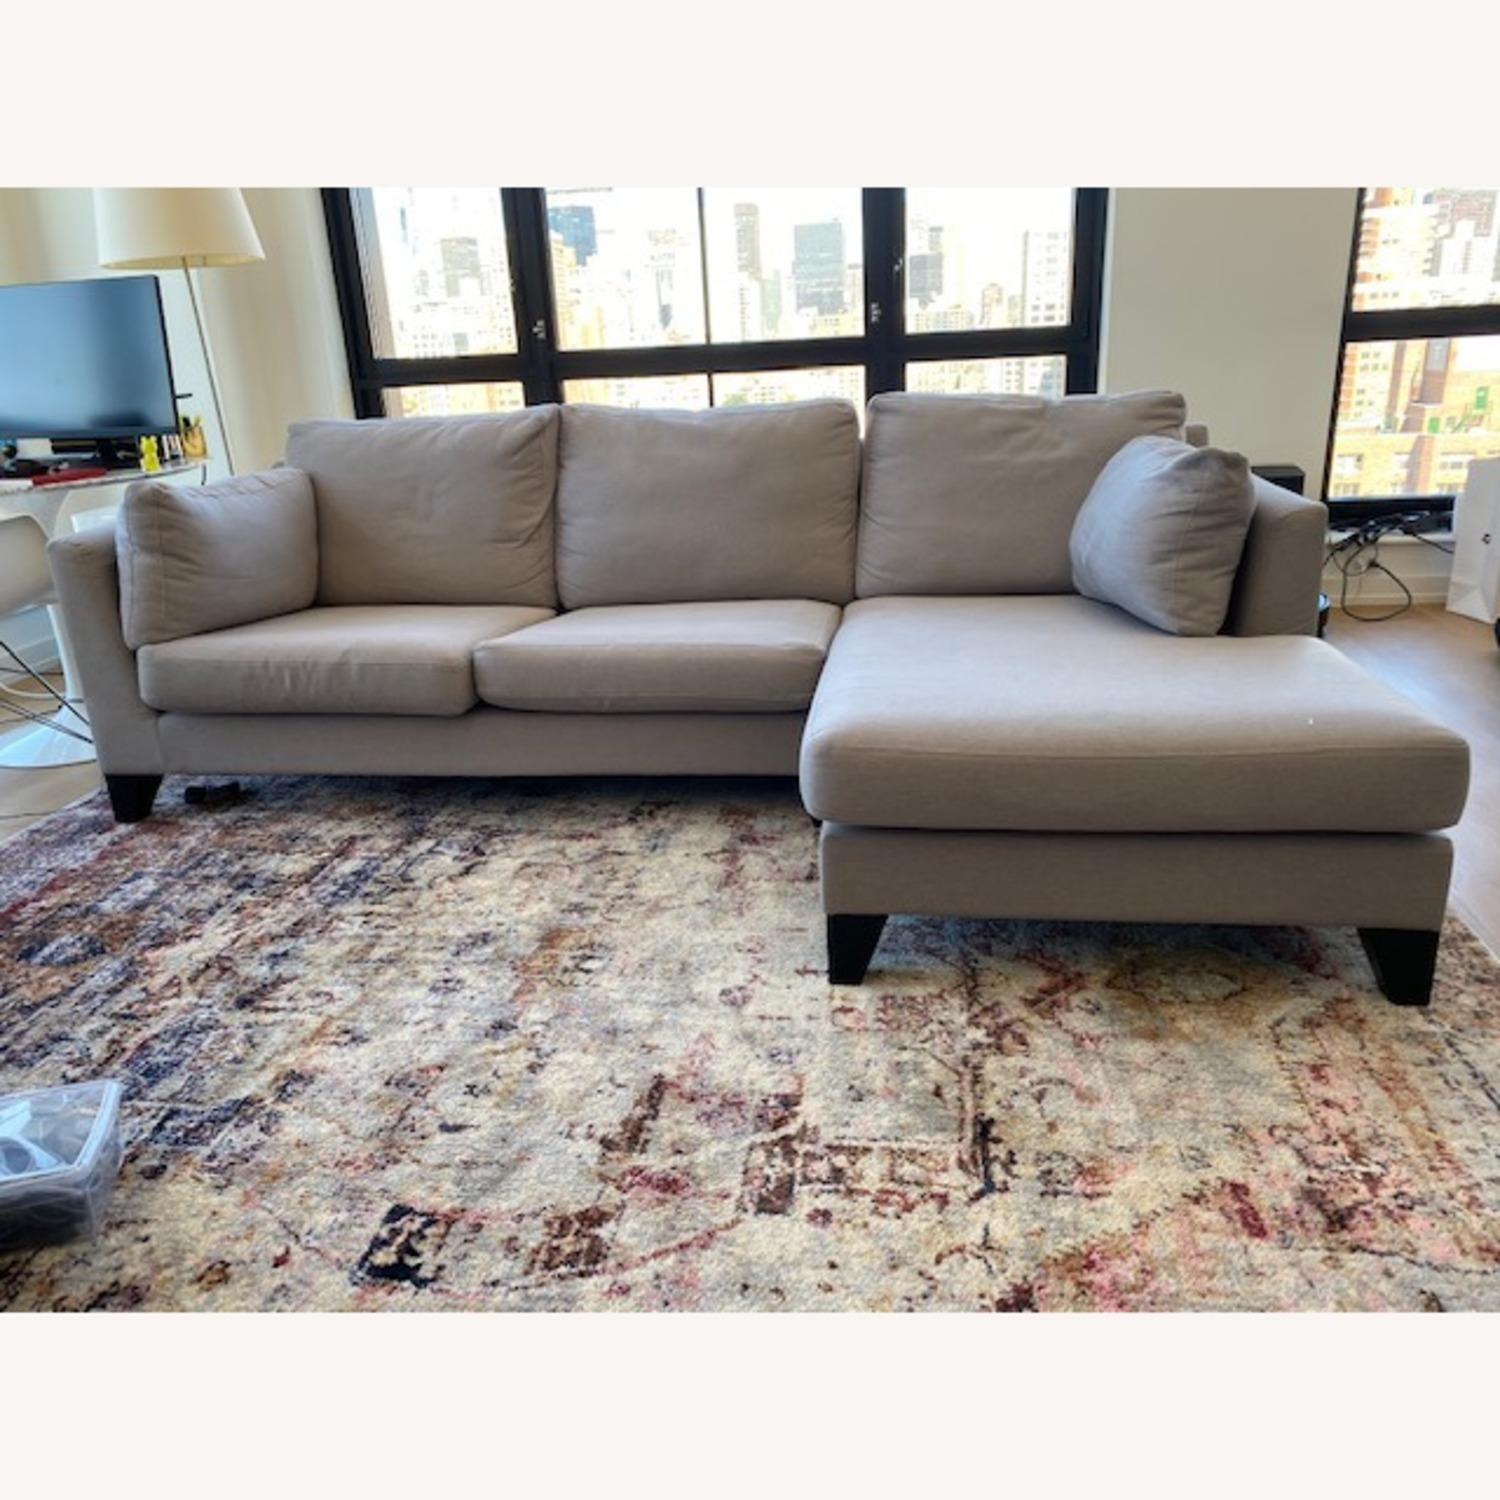 One Deko London Chaise Sectional - image-4